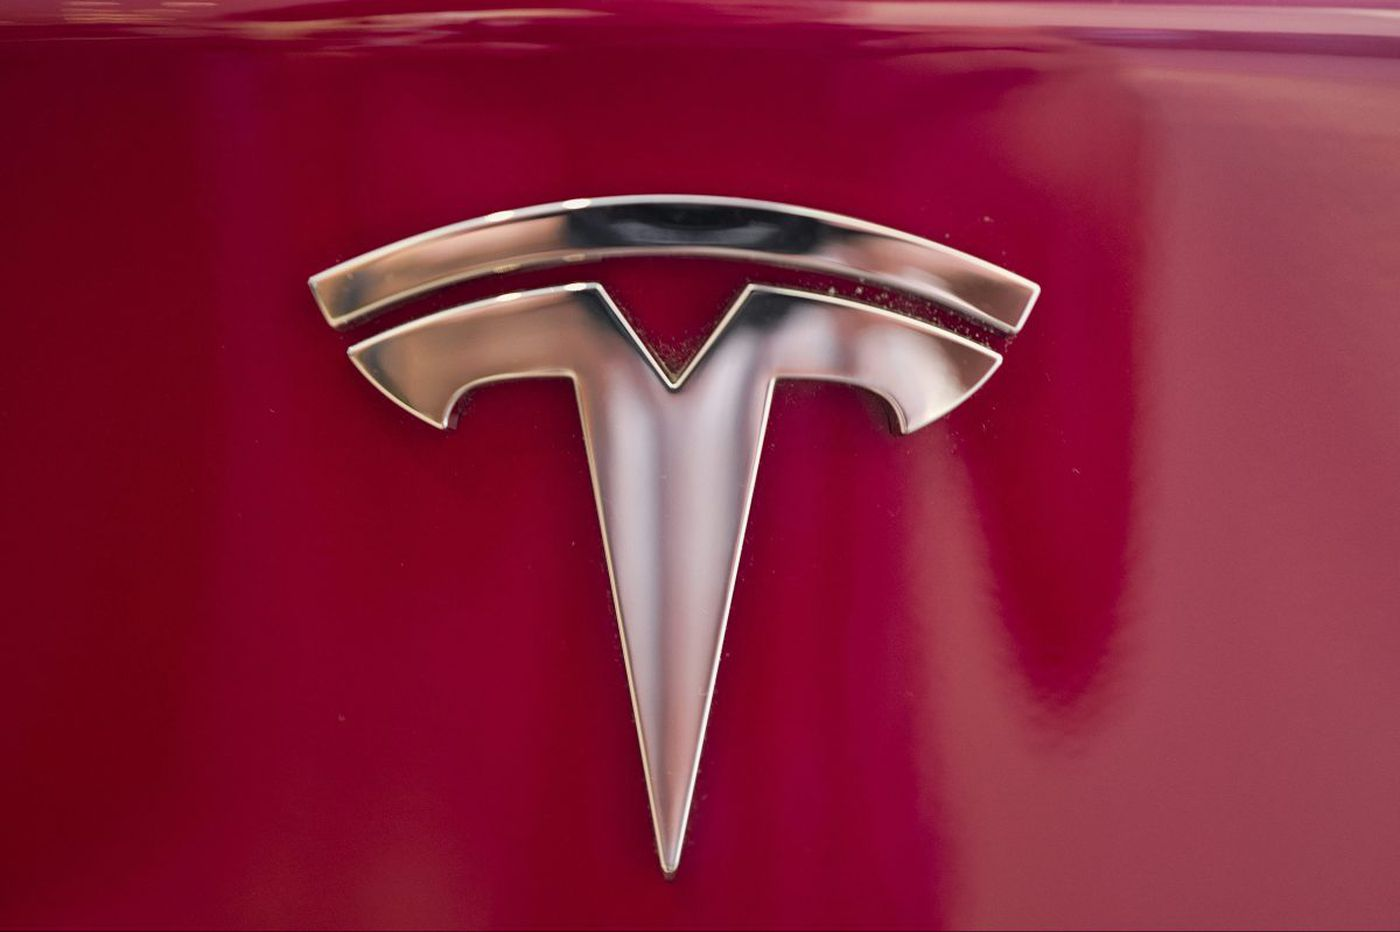 Musk elevates a little-known fixer to steer Tesla past drama